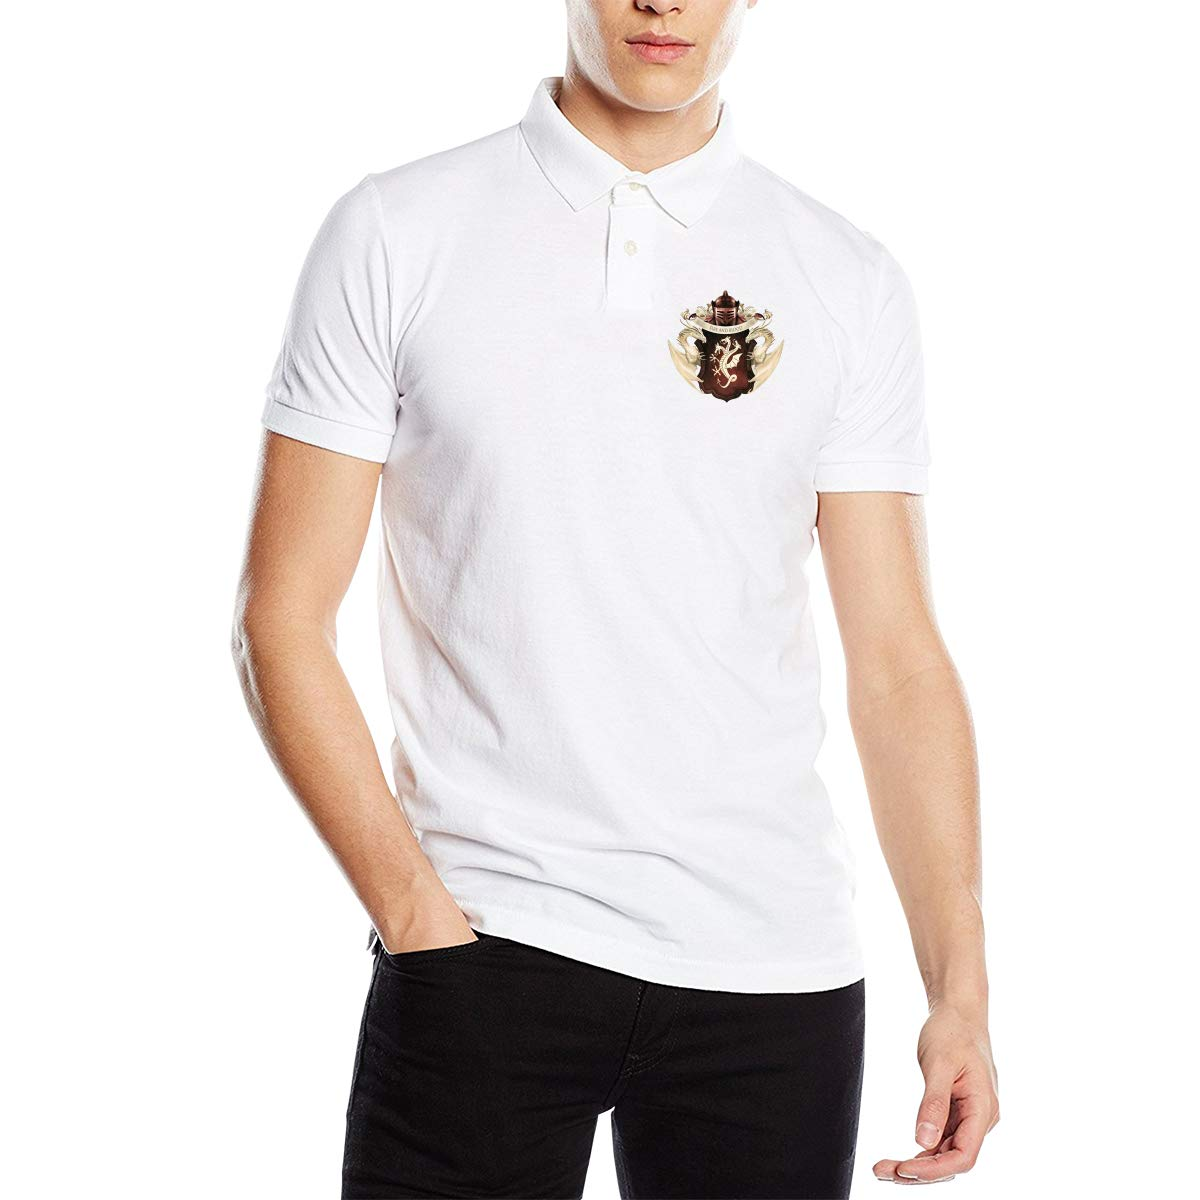 XINTAI New Personalized Game of/_THR/_Ones Targaryen Dynasty Polo T-Shirt Short Sleeve for Man Black